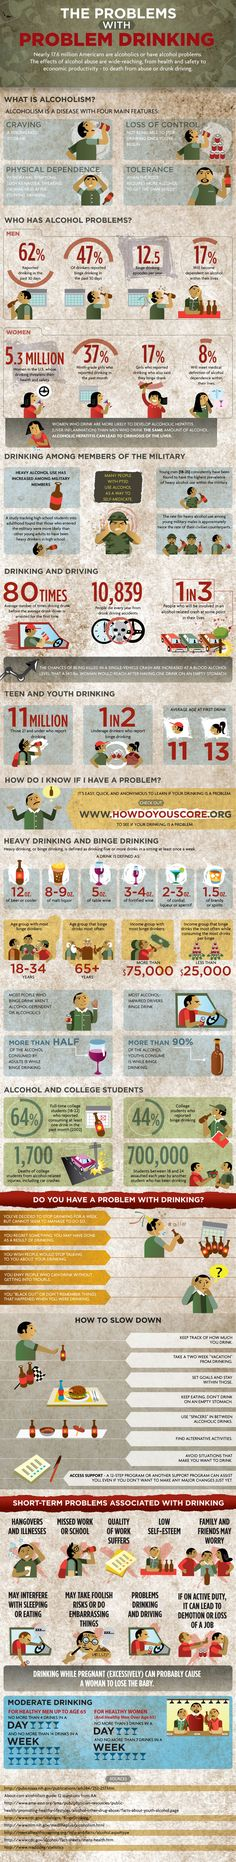 Facts on Alcohol Abuse